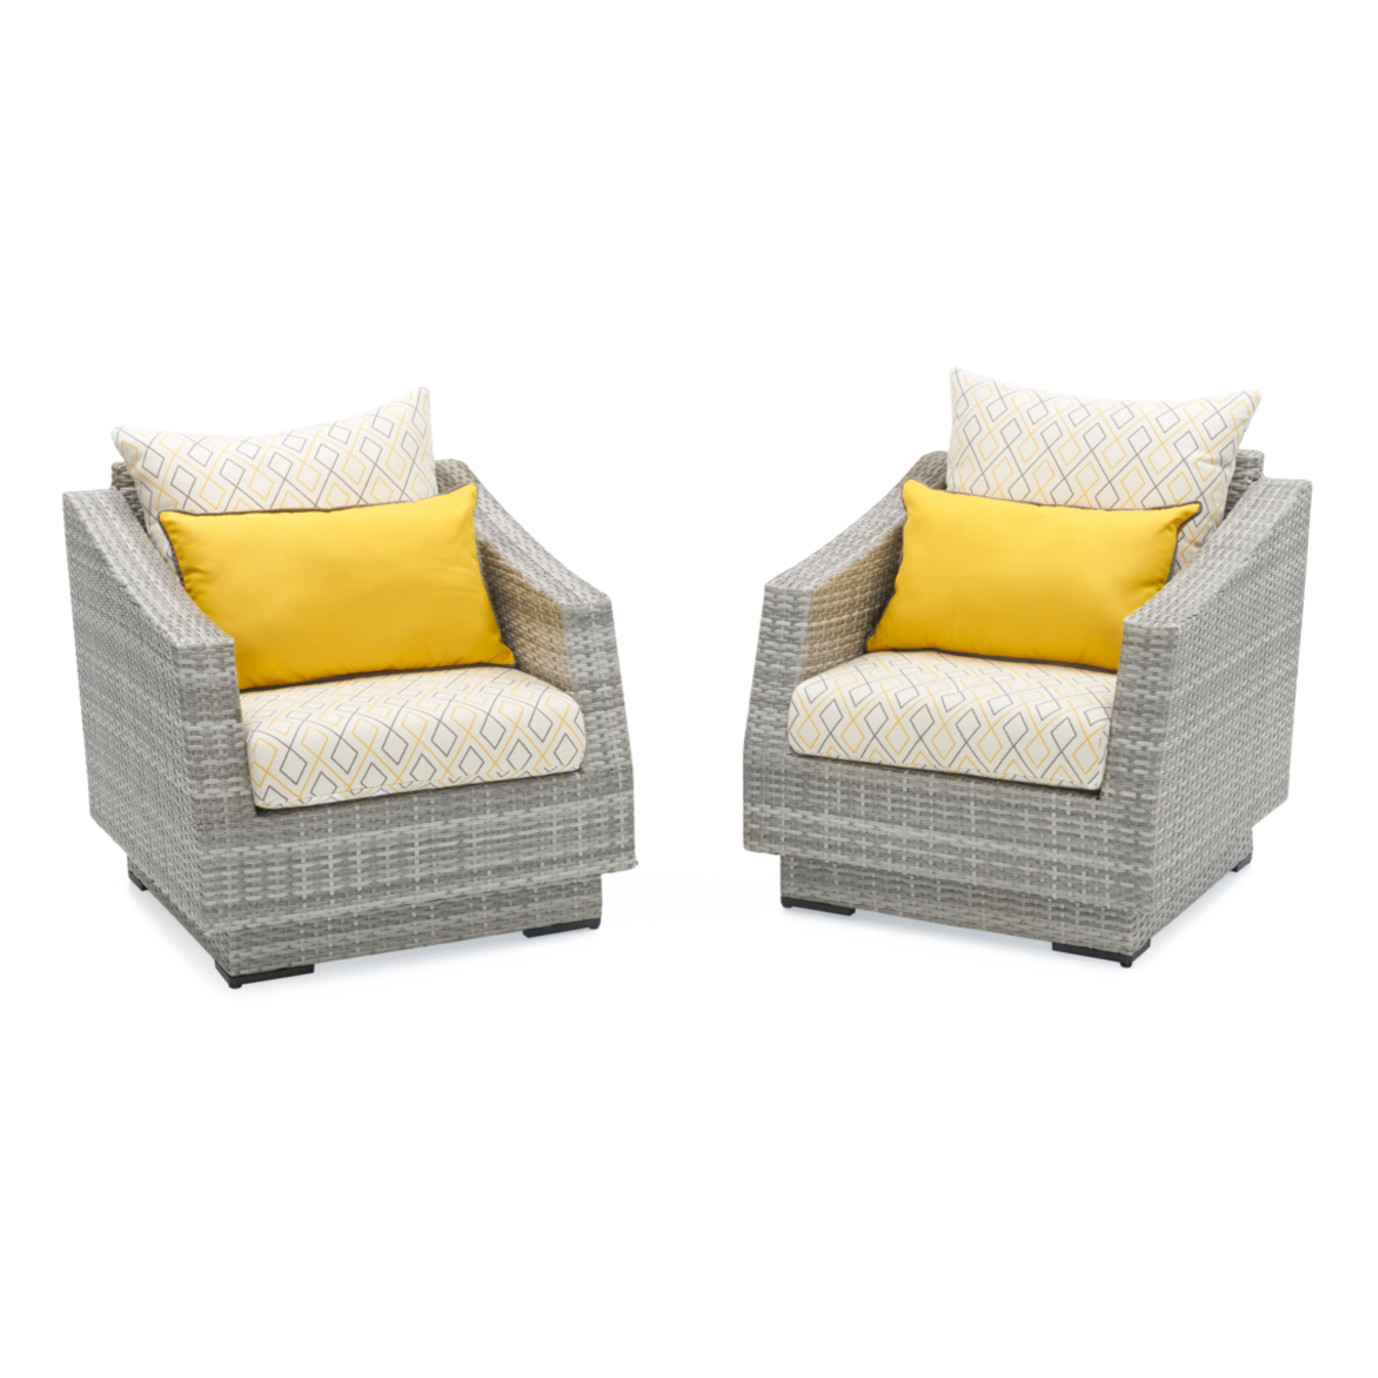 Cannes™ Deluxe Set of 2 Club Chairs - Sunflower Yellow